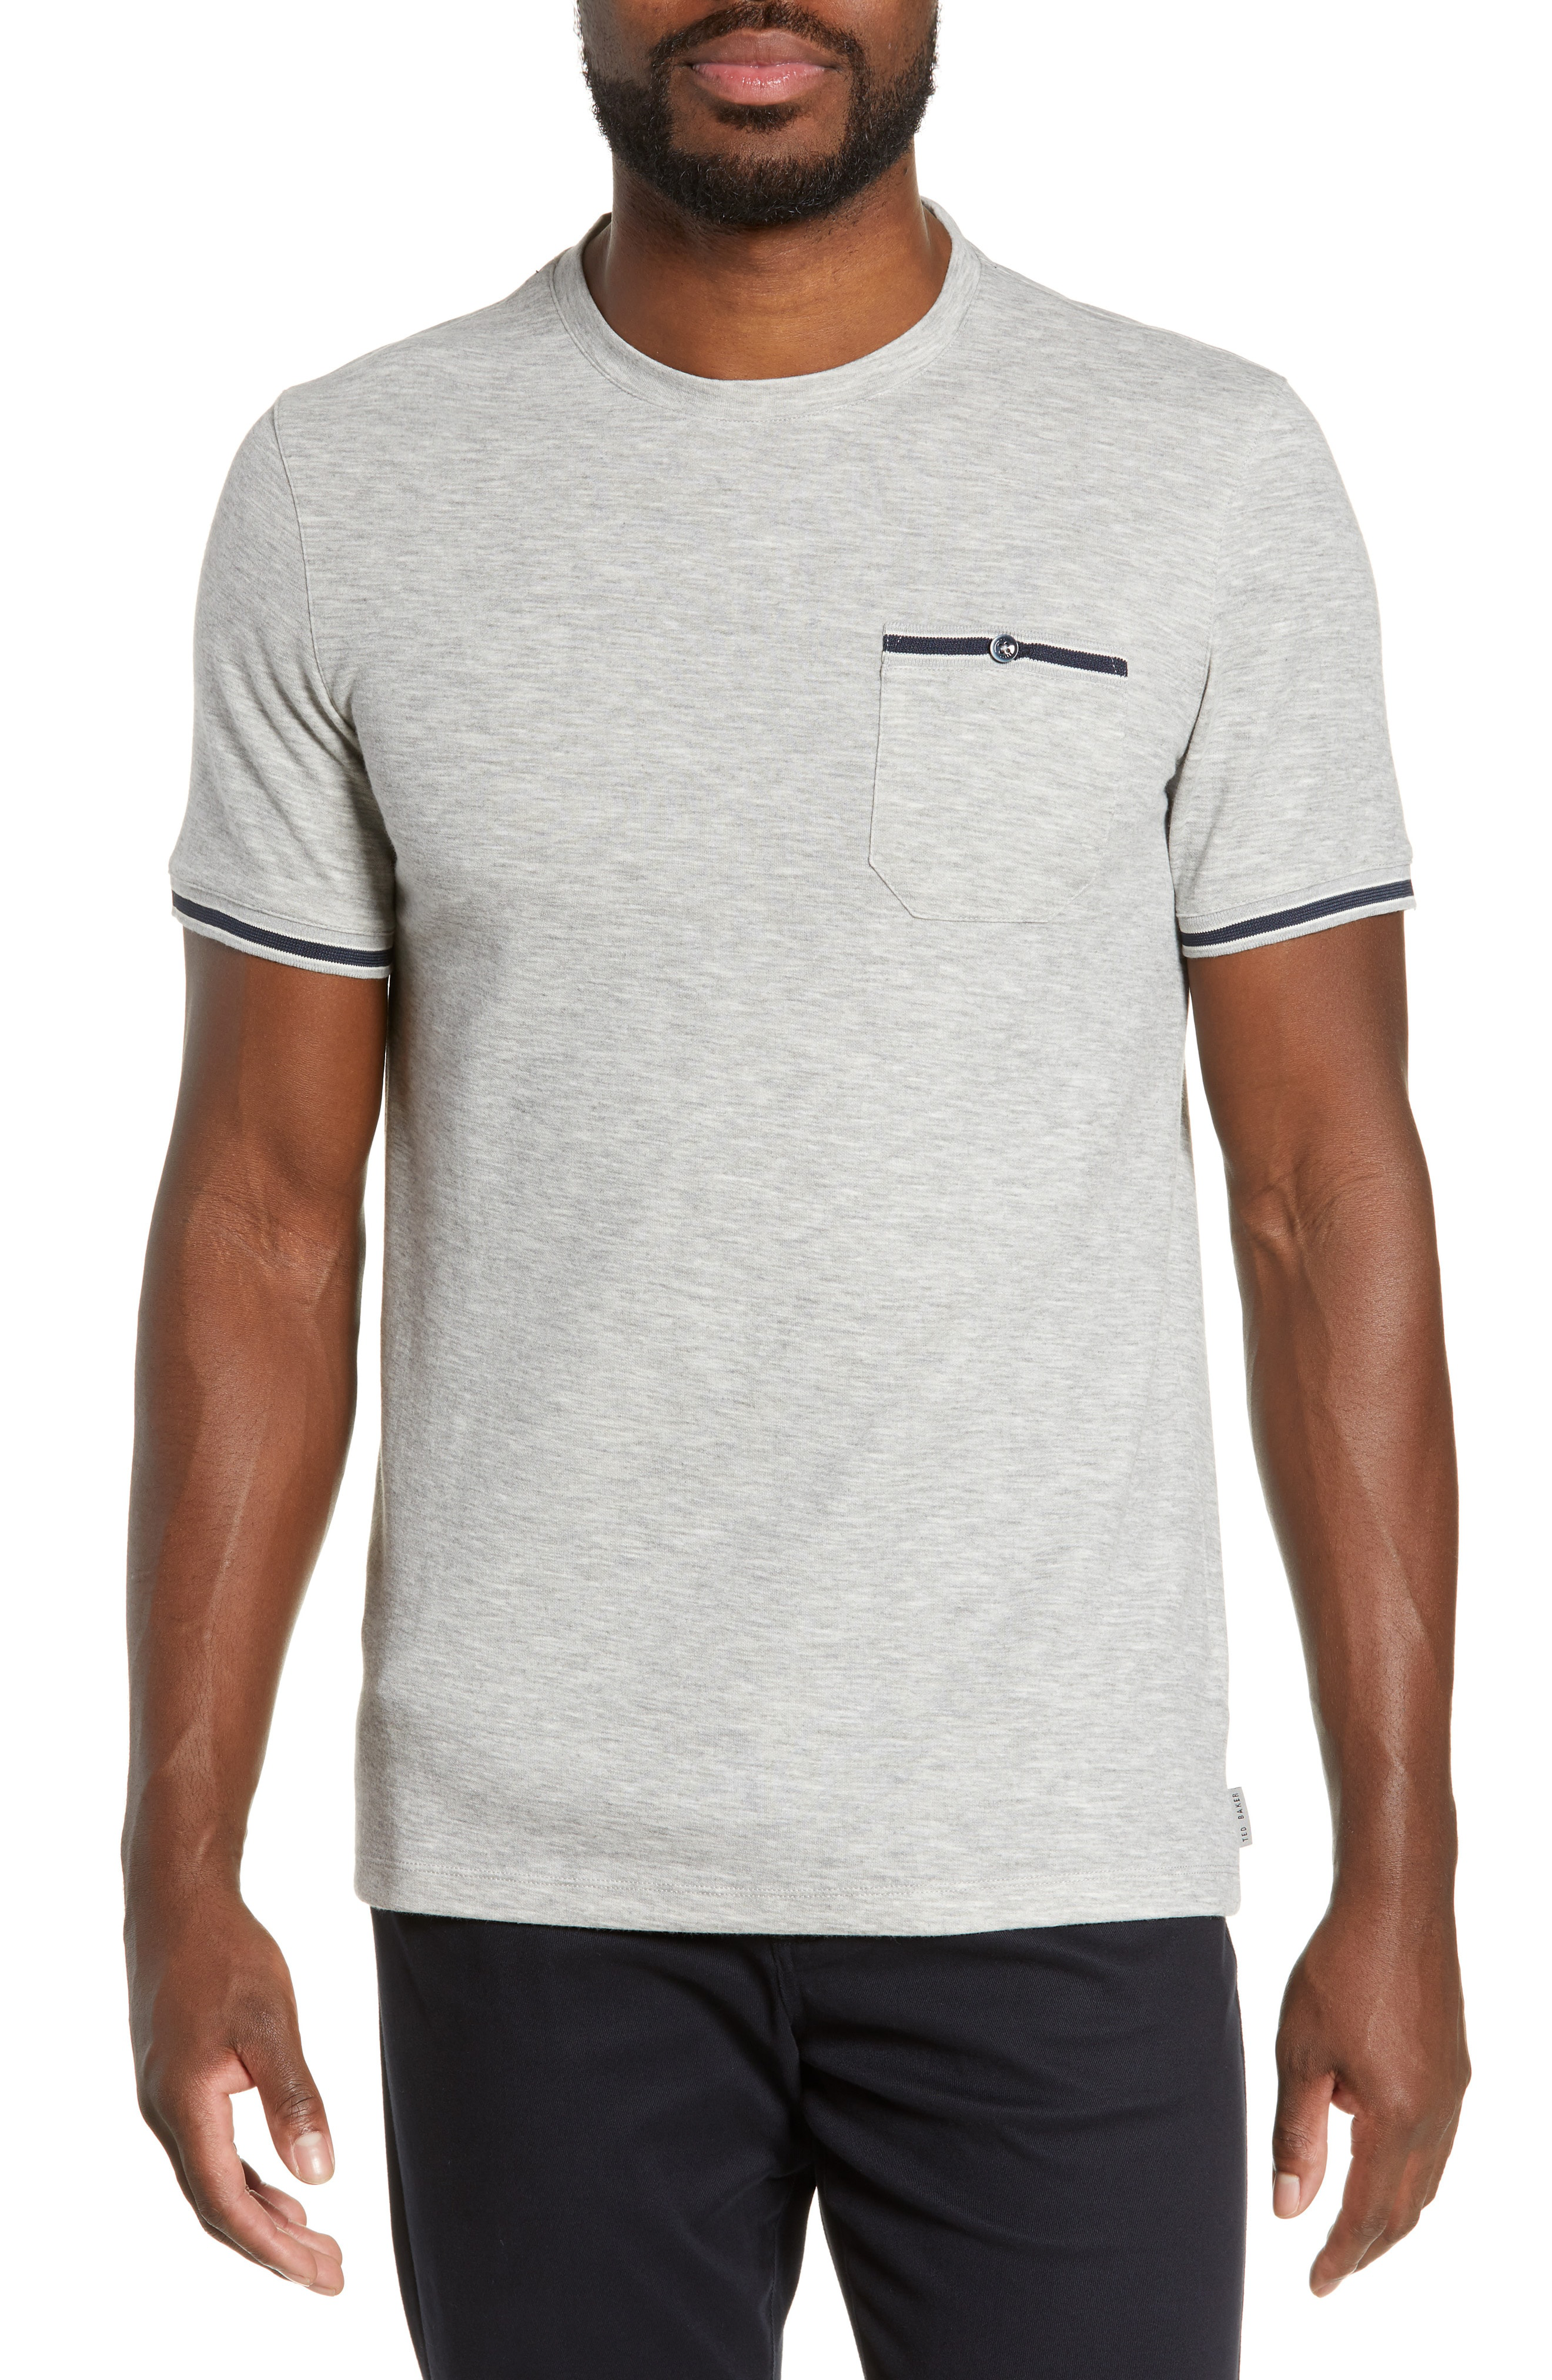 986ad3080e8182 Ted Baker Khaos Slim Fit T-Shirt In Grey-Marl